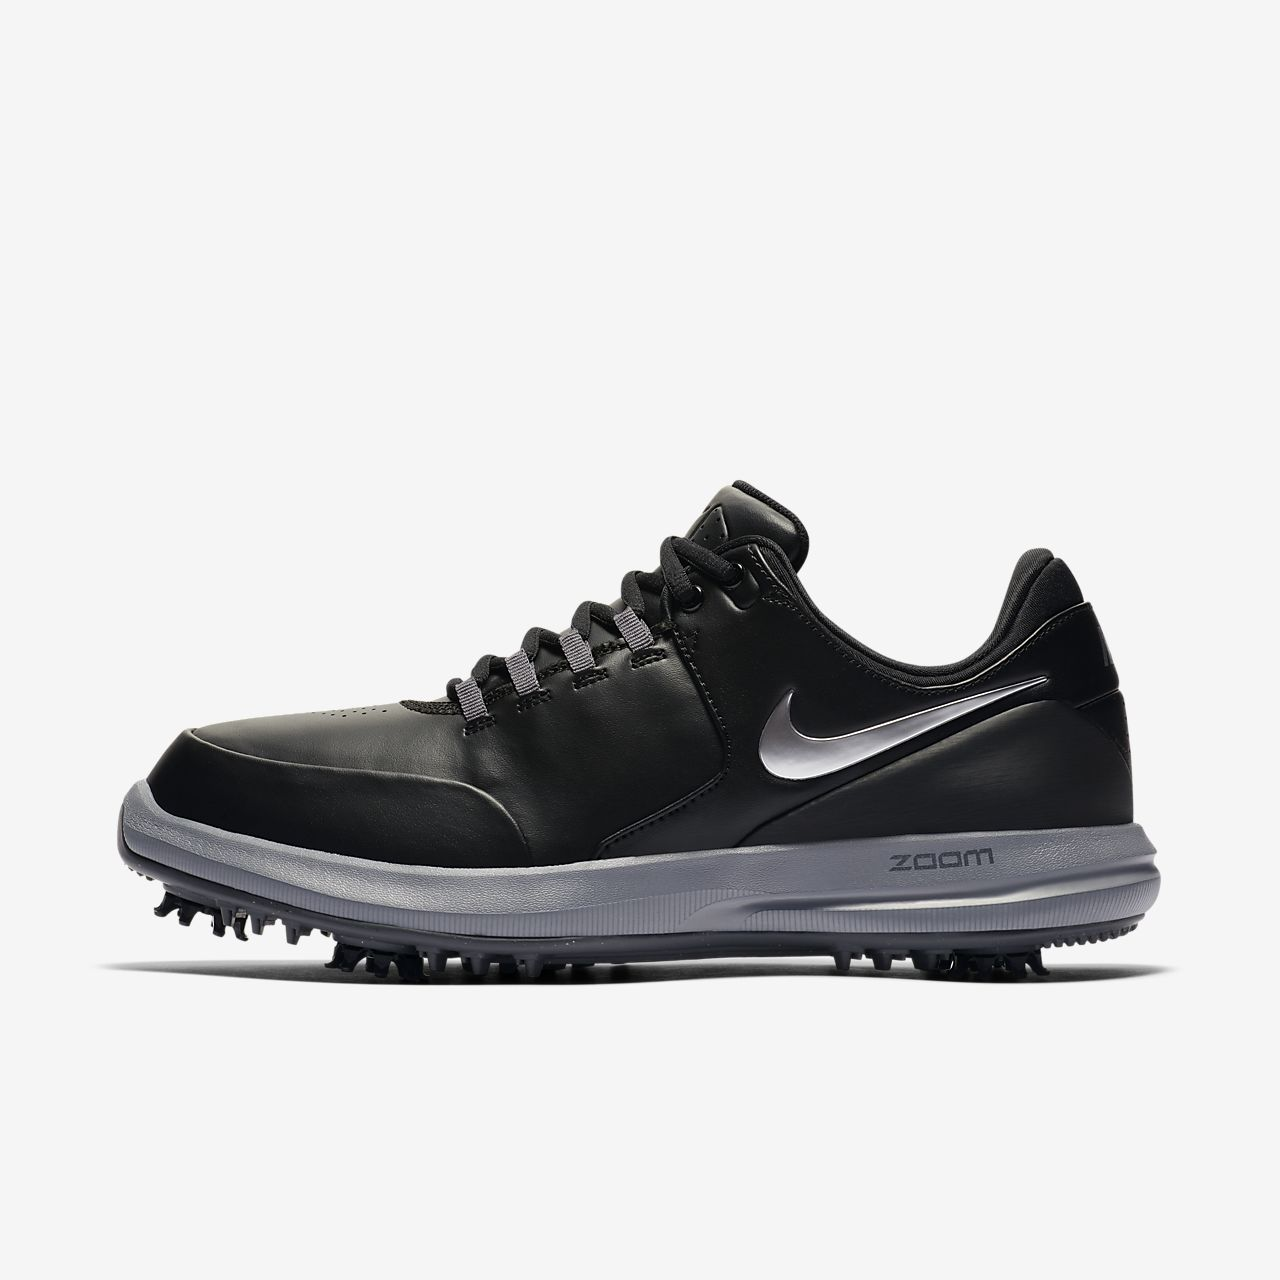 Nike Air Zoom Accurate Golfschoen voor heren